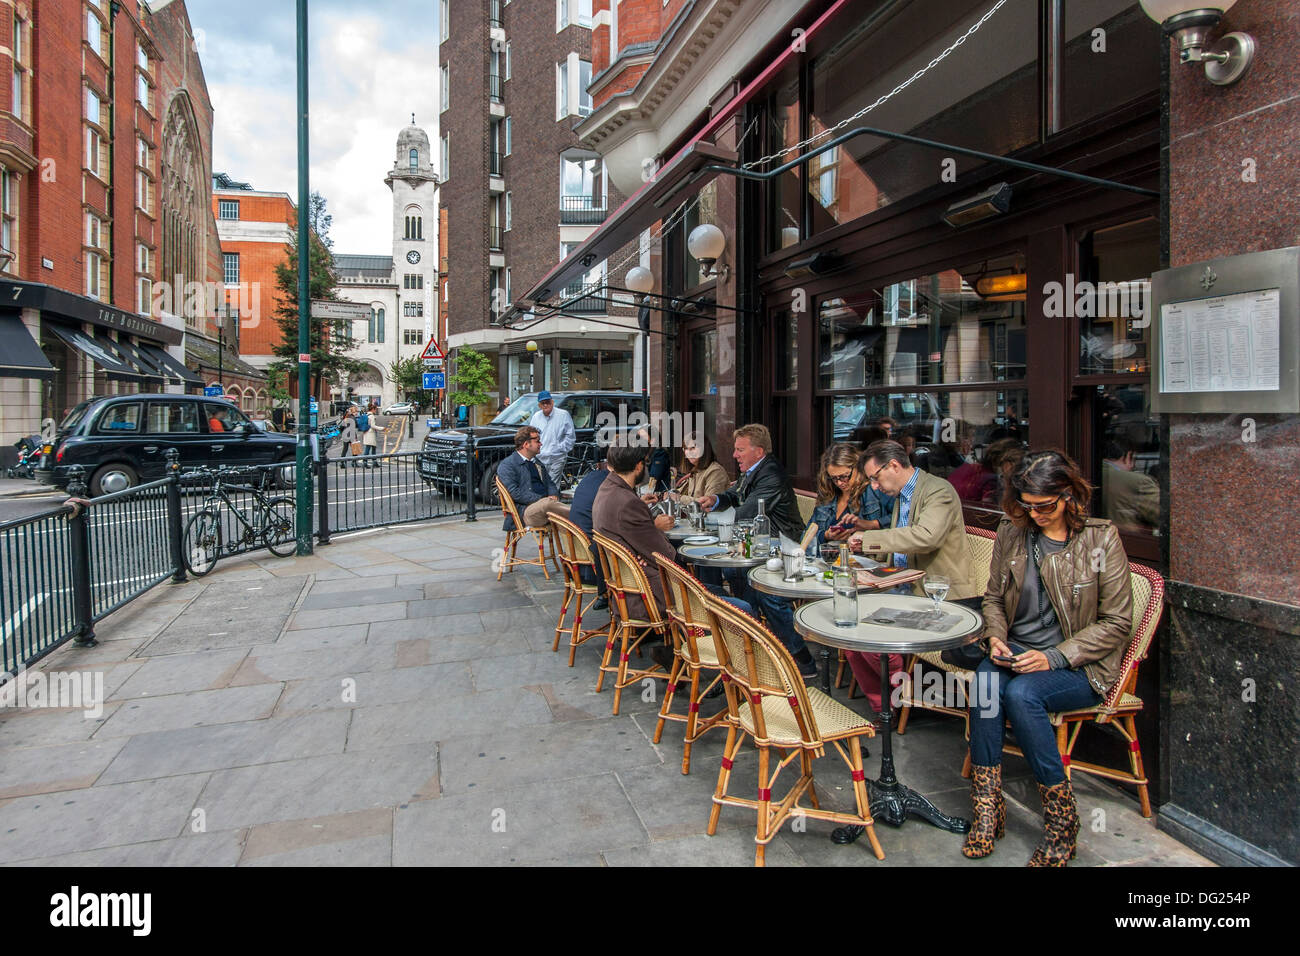 Colbert Restaurant exterior with diners - Stock Image